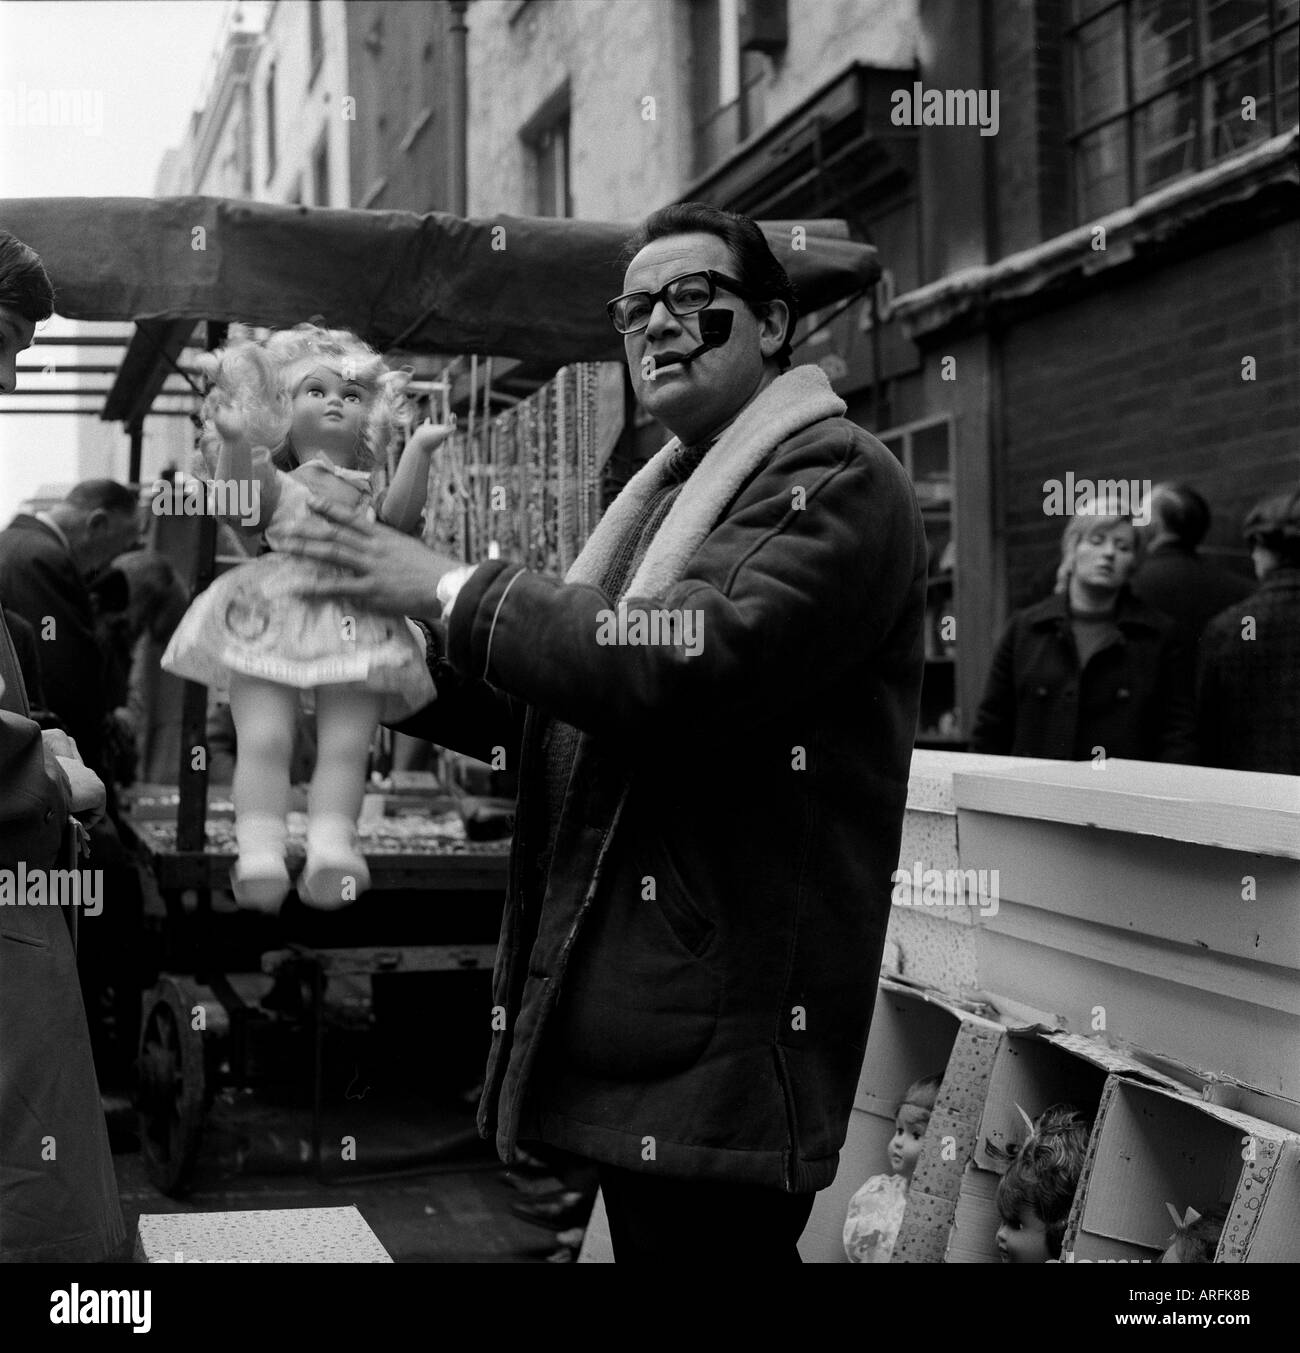 London, England.  Leather Lane Street Market 1970. Photographed by Brian Harris when he was 17 and a photographers assistant. - Stock Image